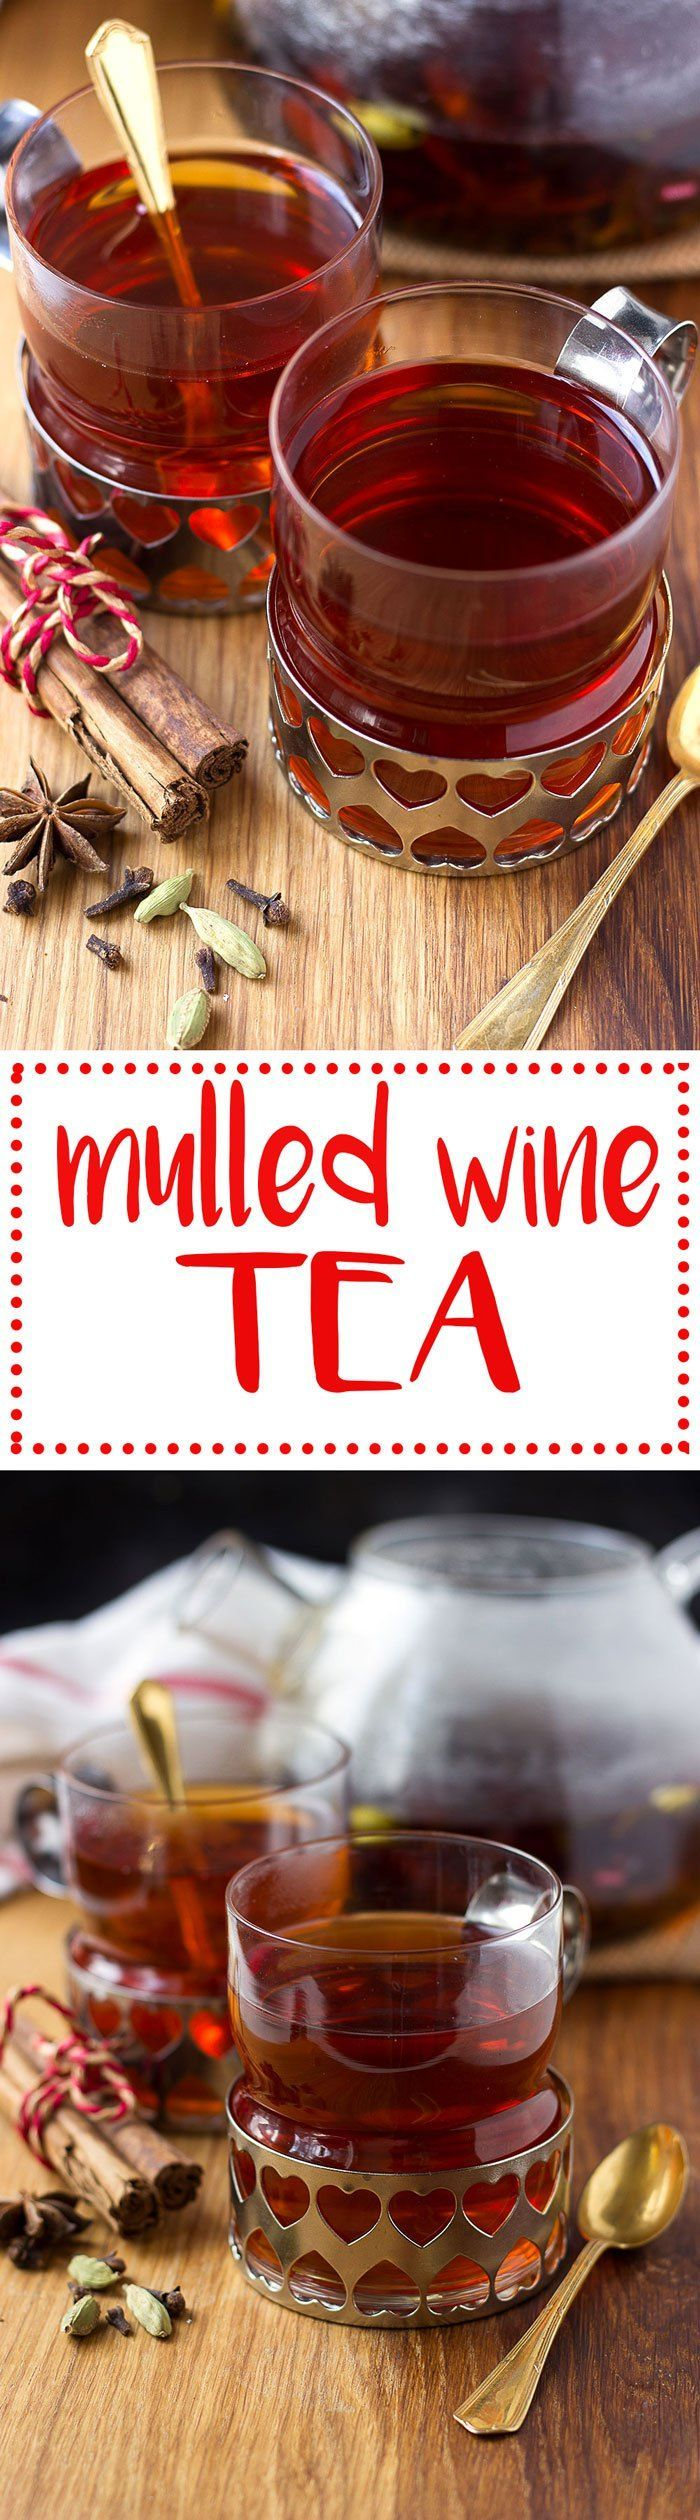 Mulled wine flavoured tea! A great non-alcoholic alternative for the holidays! #winetea #vinoplease